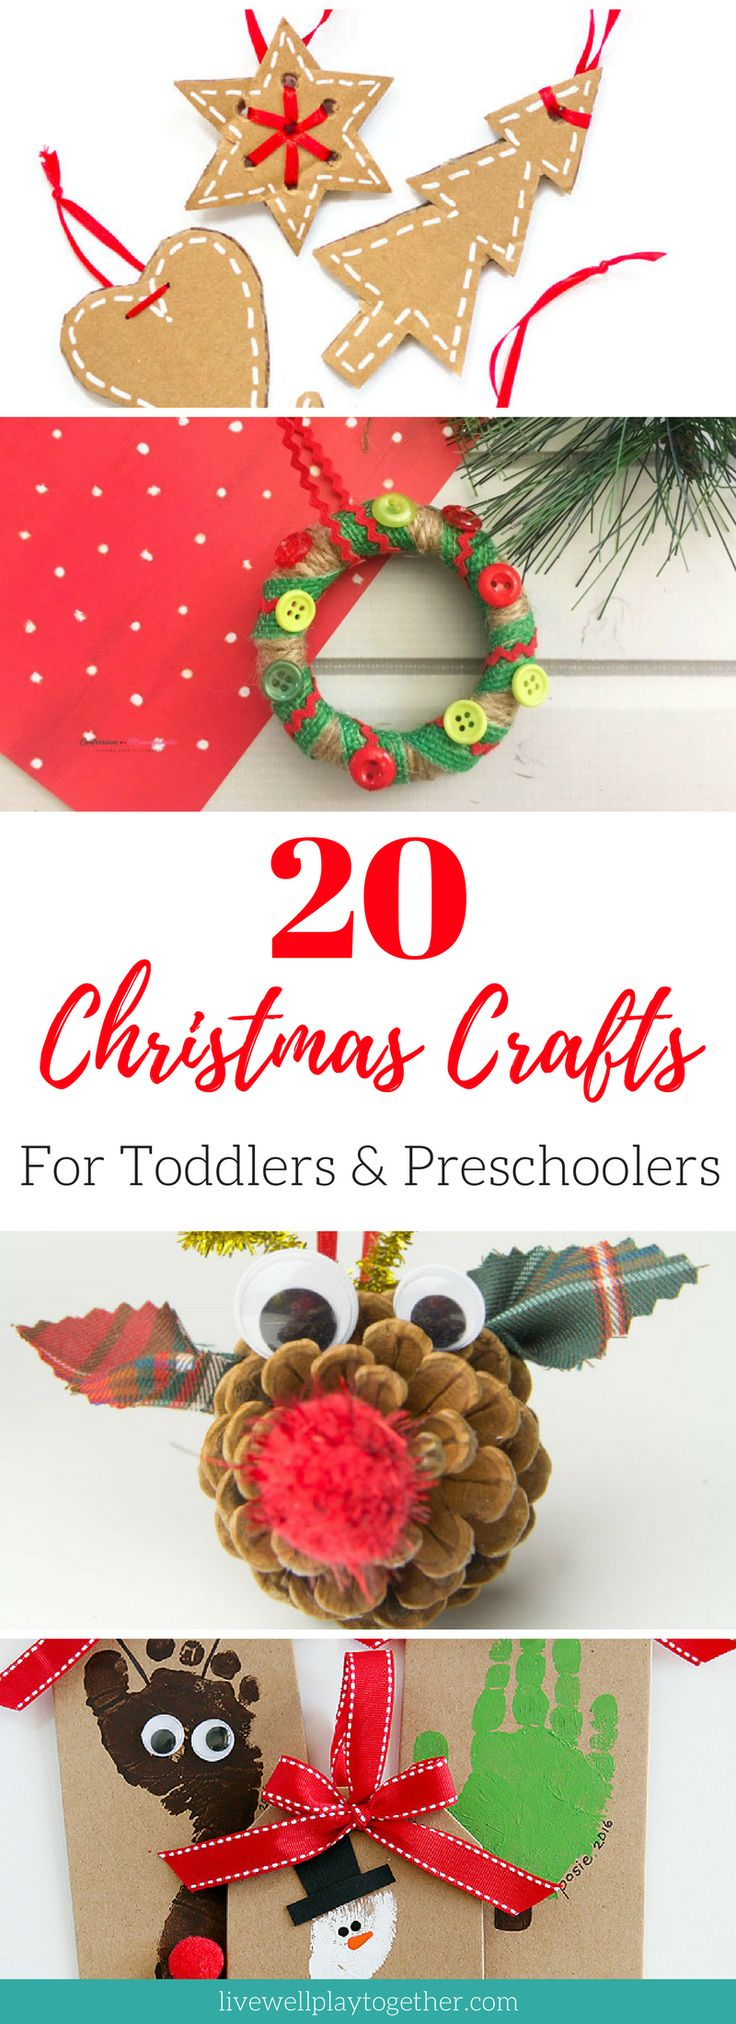 20 Simple Christmas Crafts for Toddlers and Preschoolers that You Can Do at Home #christmas #crafts #toddlercrafts #preschool #preschoolcrafts #christmascrafts